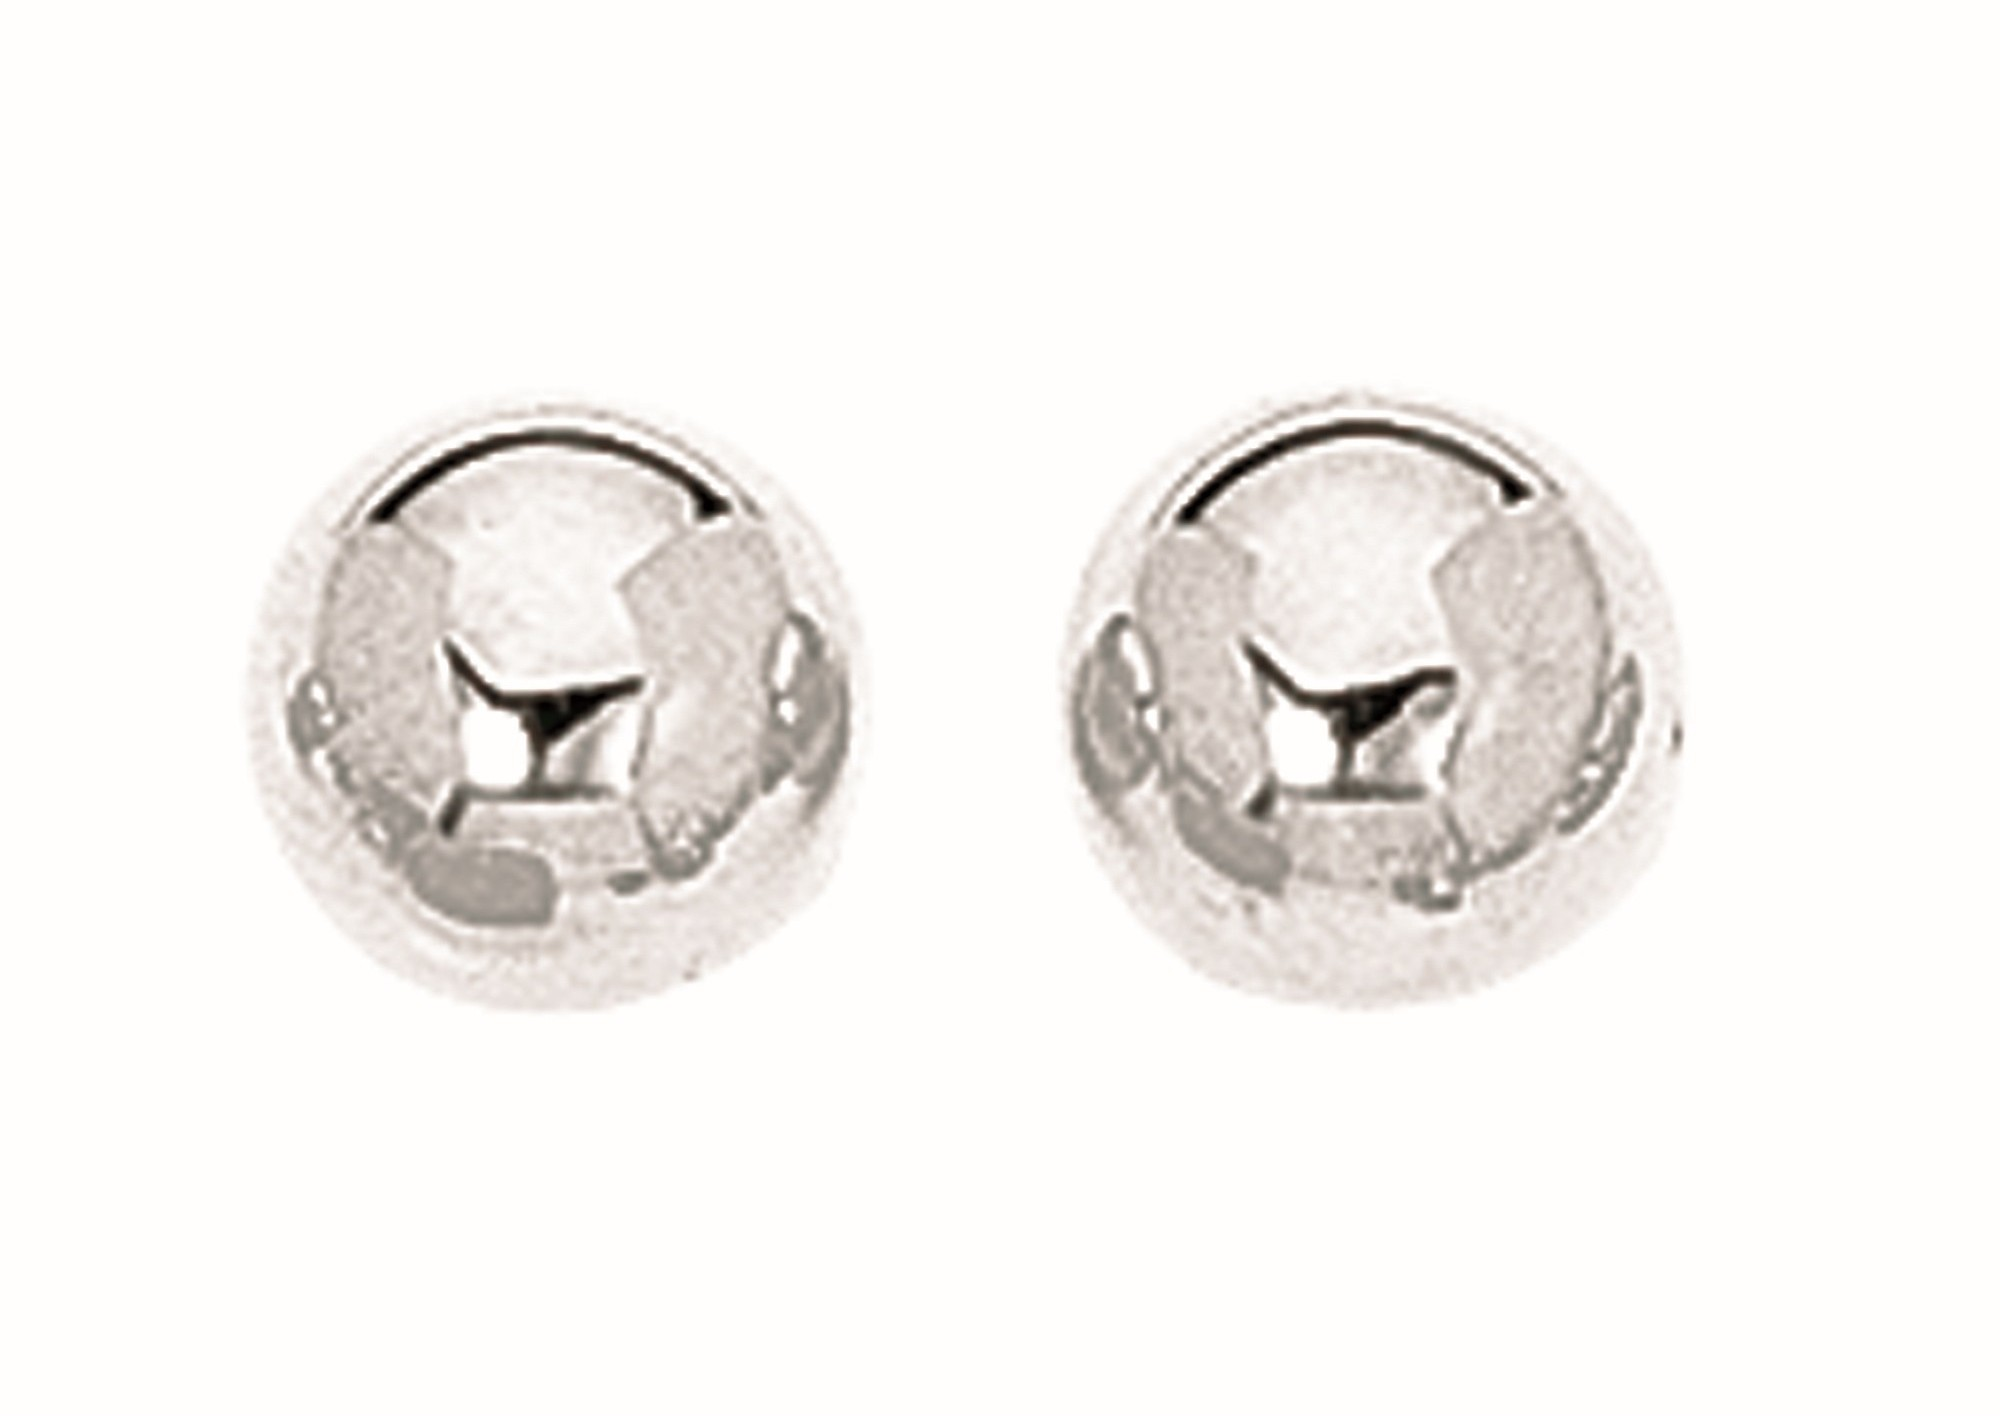 Silver Rhodium Plated 8.0mm (1/3) Textured Shiny Stud Earrings